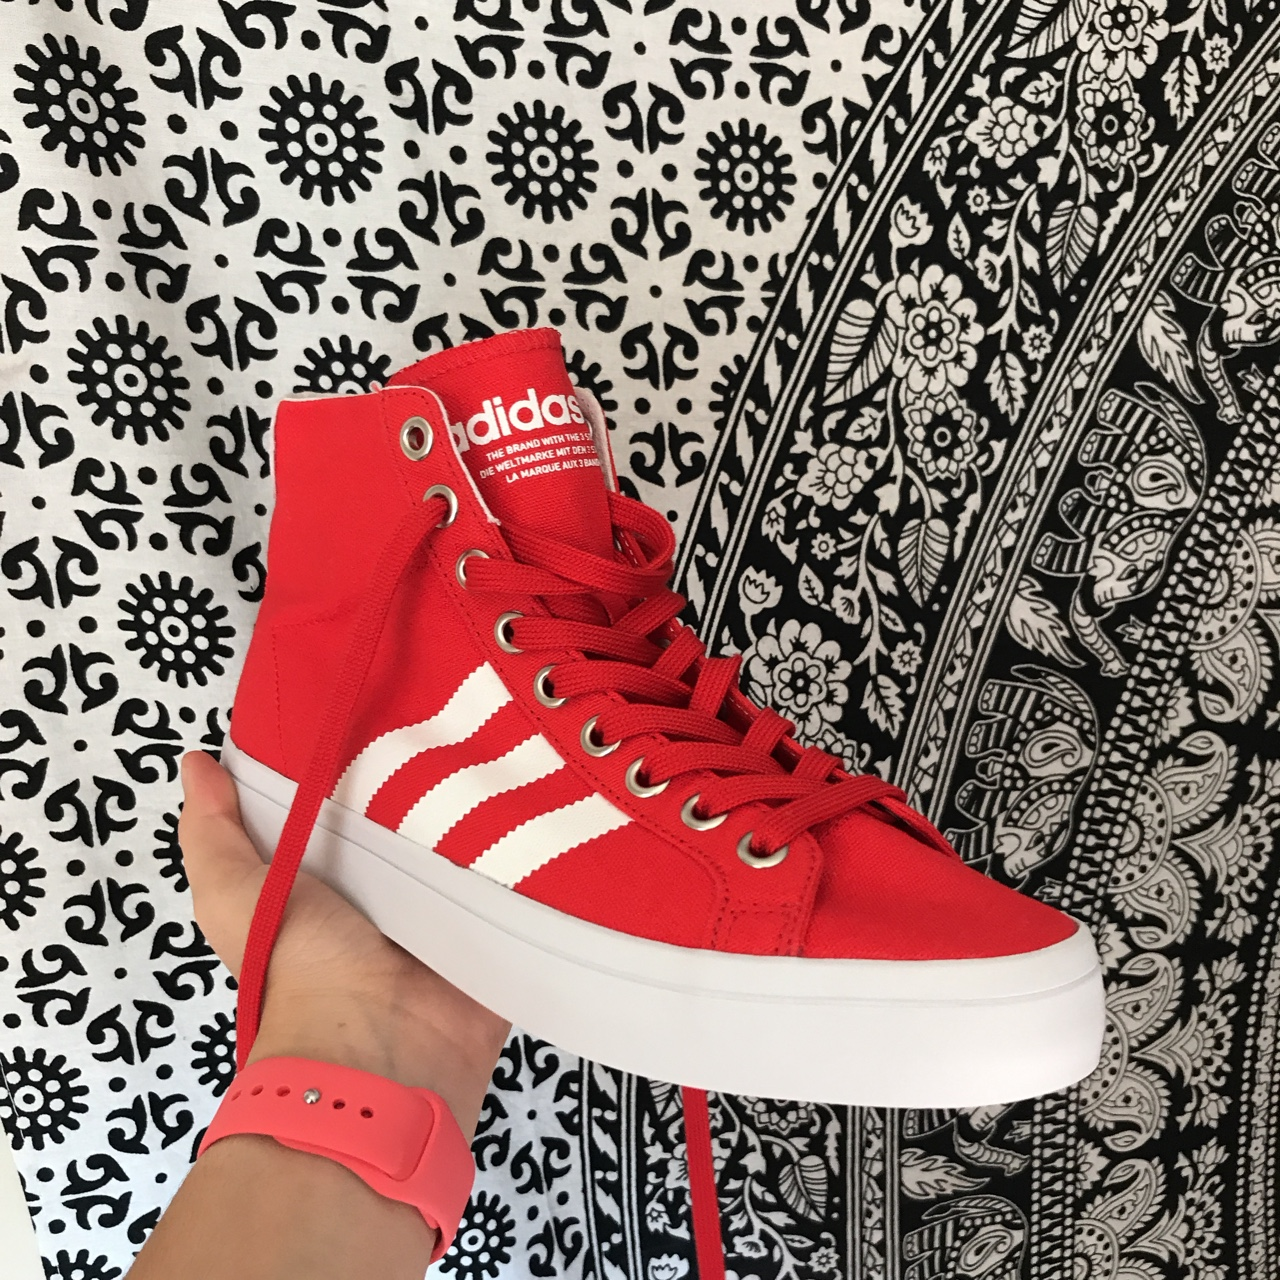 adidas court vantage mid red